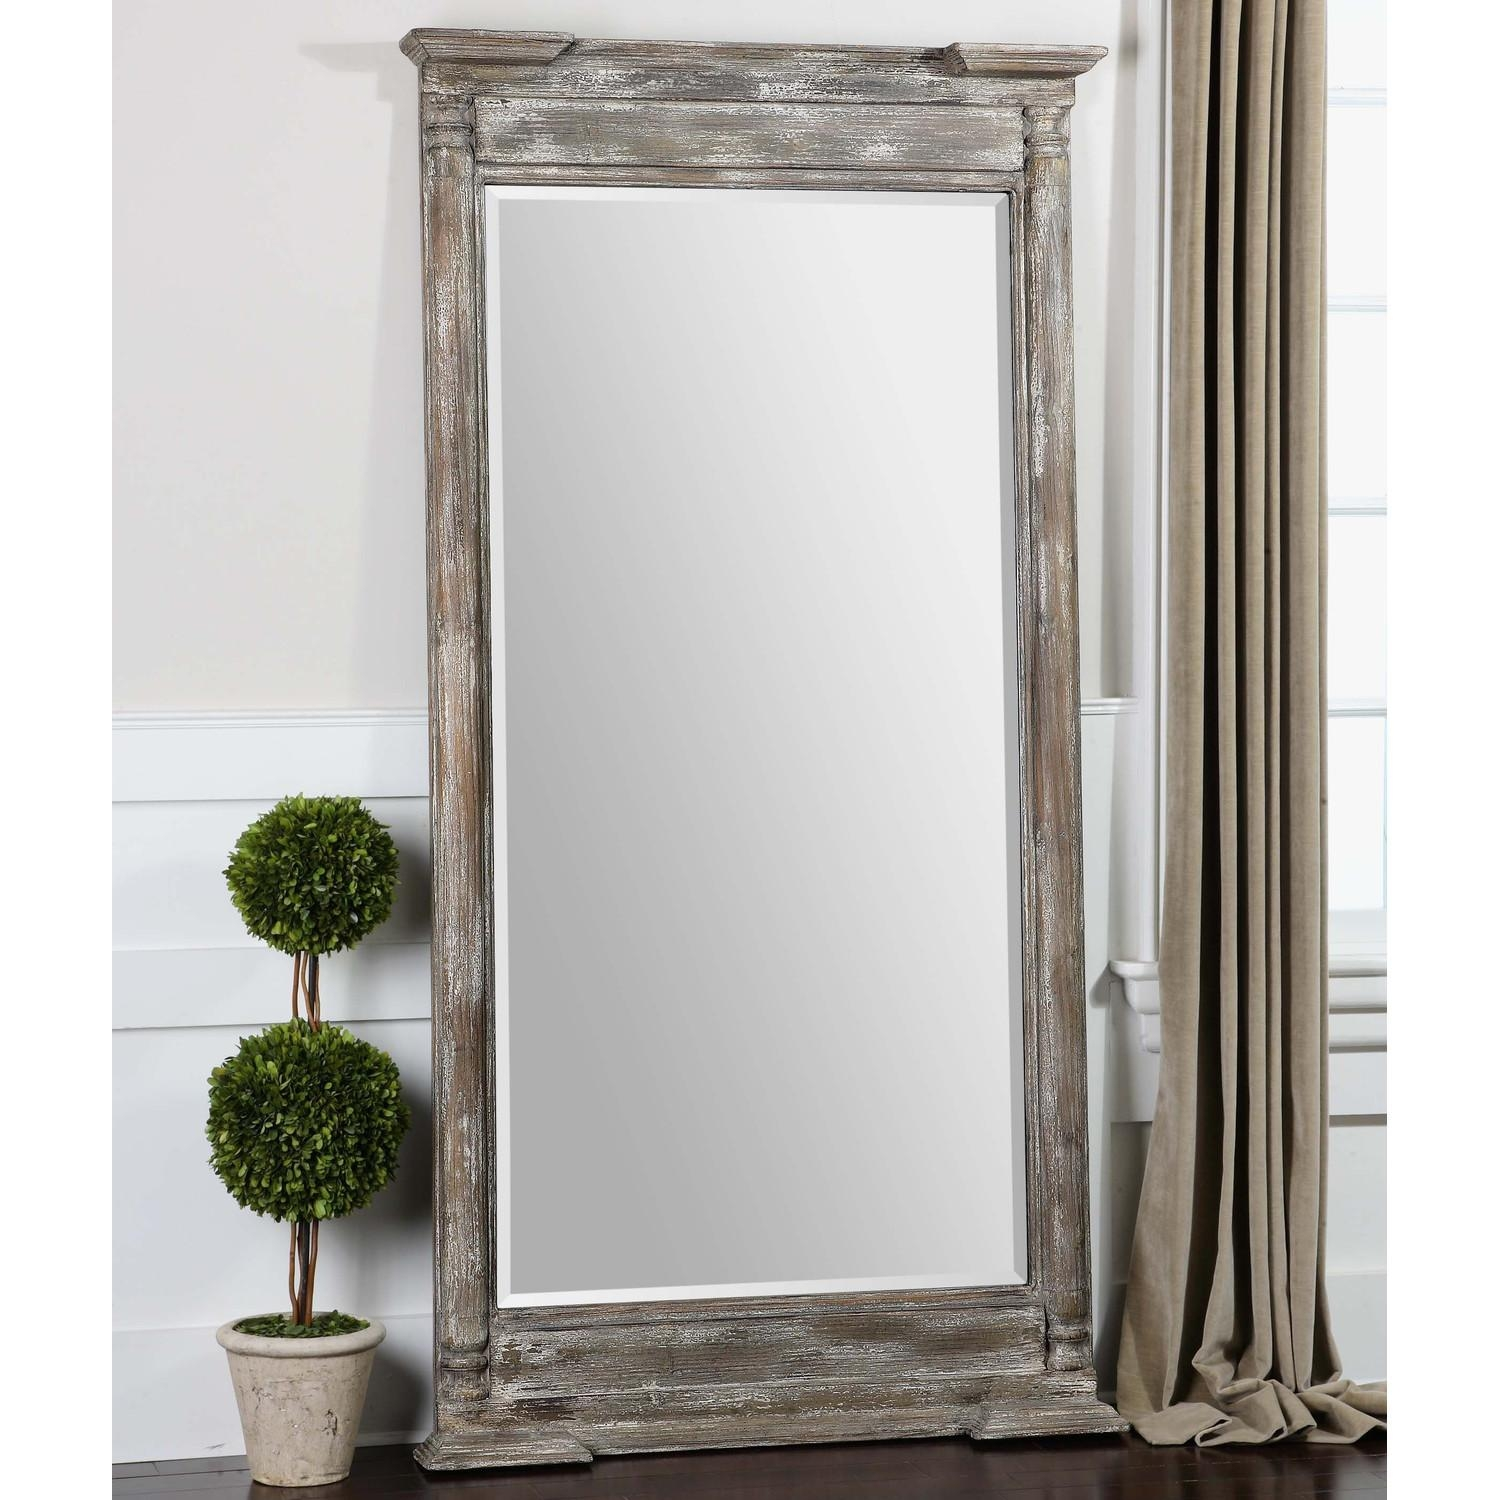 Oversized Floor Mirrors Cheap | Floor Decoration Regarding Full Length Vintage Mirror (Image 17 of 20)